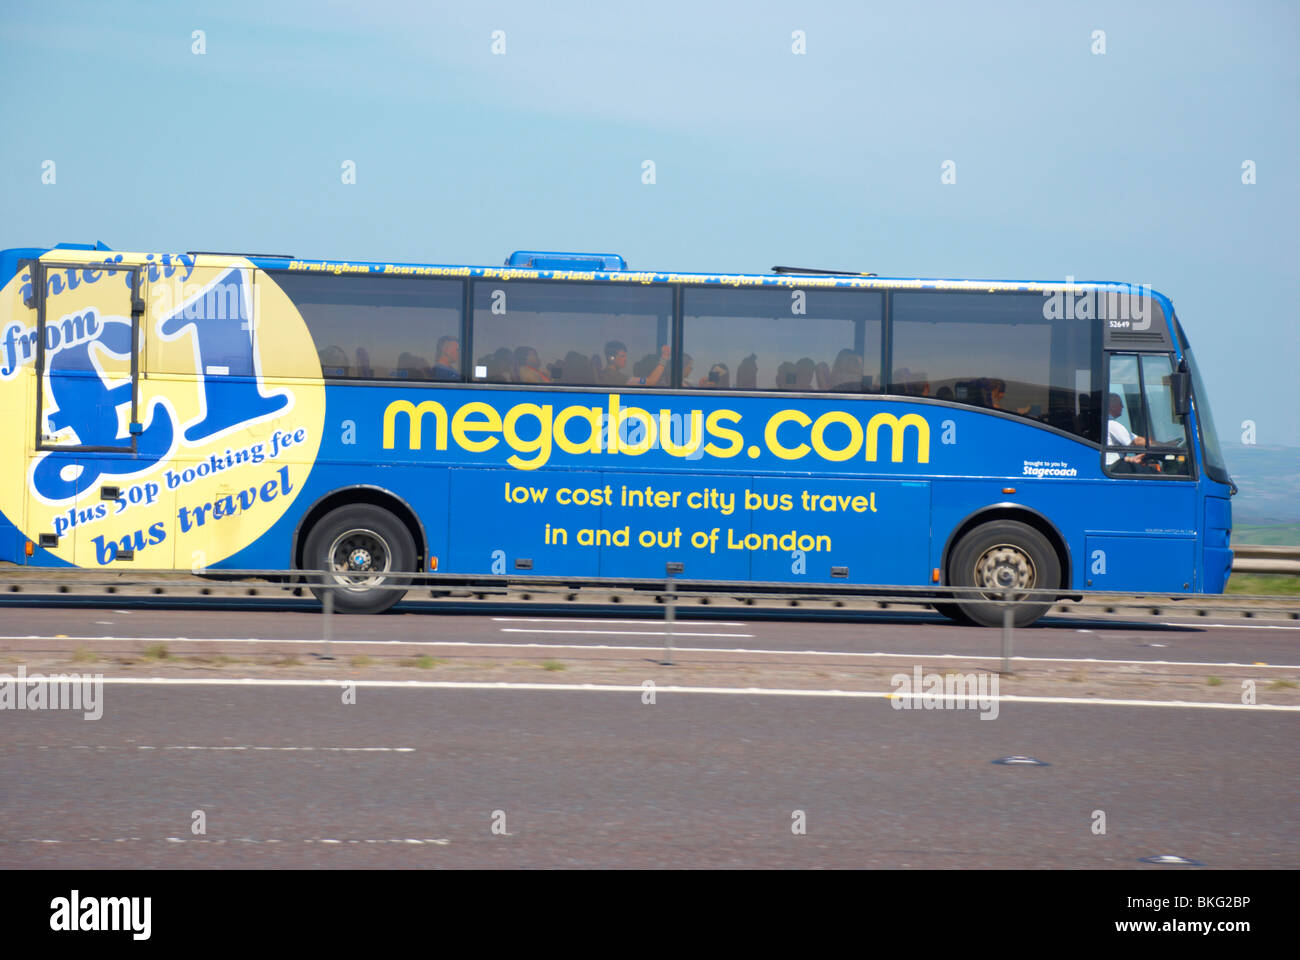 Megabus on the M62 motorway (near Huddersfield). - Stock Image